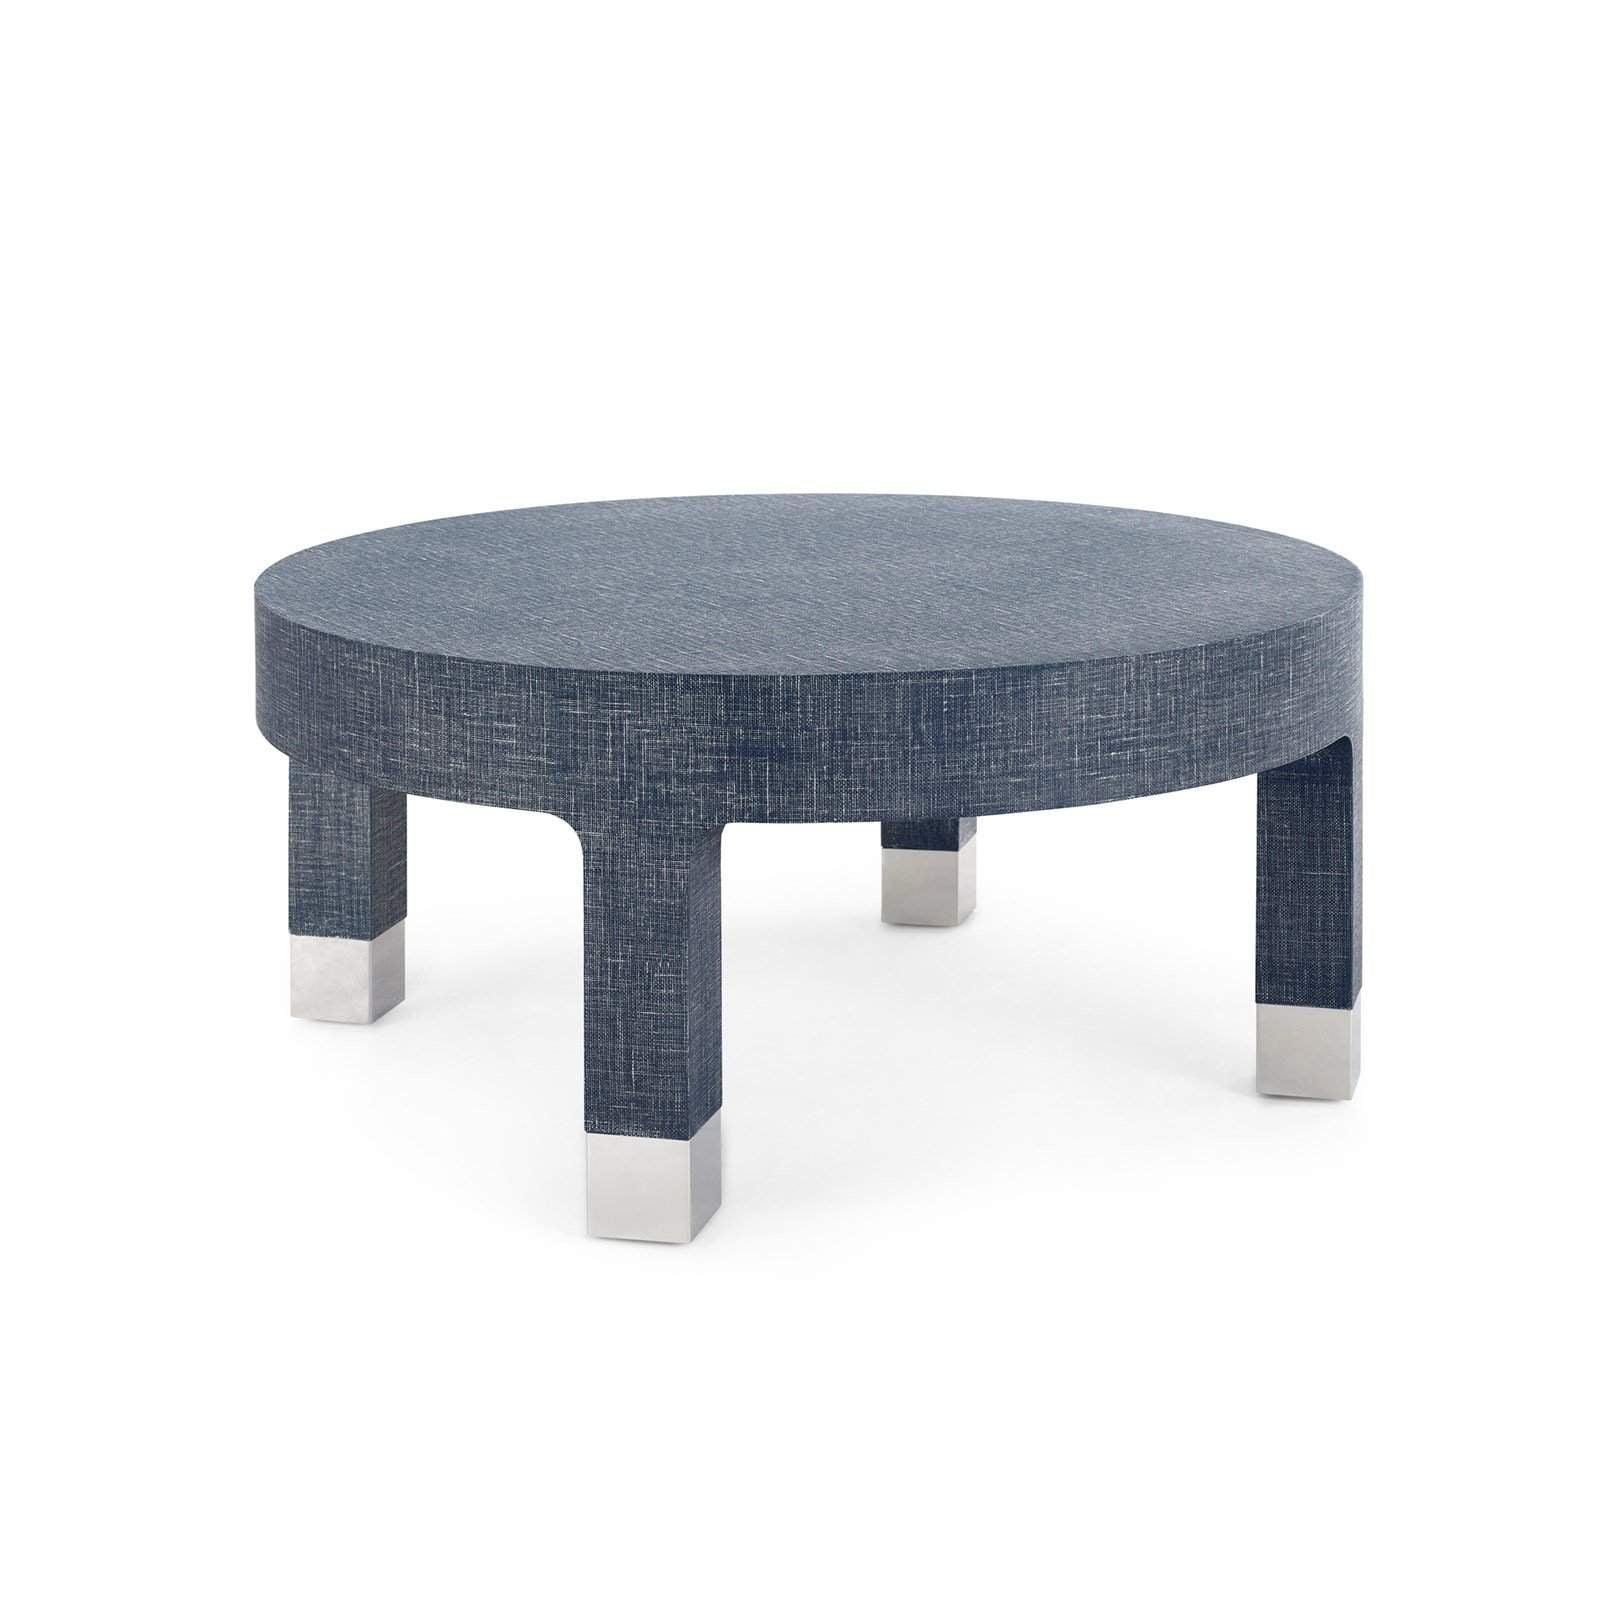 Bungalow 5 DAKOTA ROUND COFFEE TABLE in NAVY BLUE